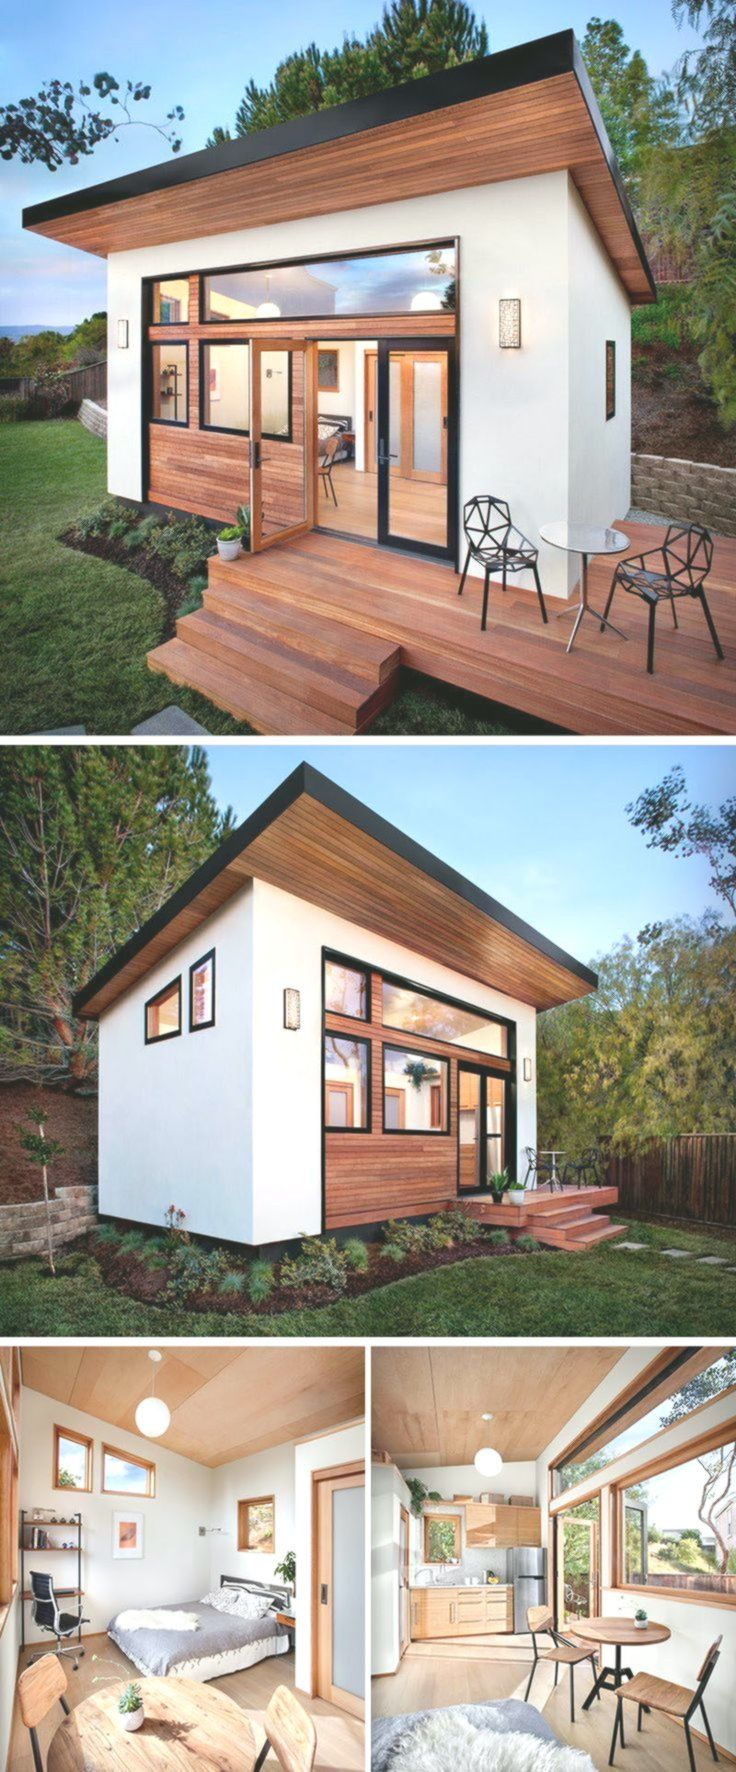 14 Inspirational Backyard Offices Studios And Gue Homedecor Backyard Office Guest House Small Backyard House Mini backyard guest house